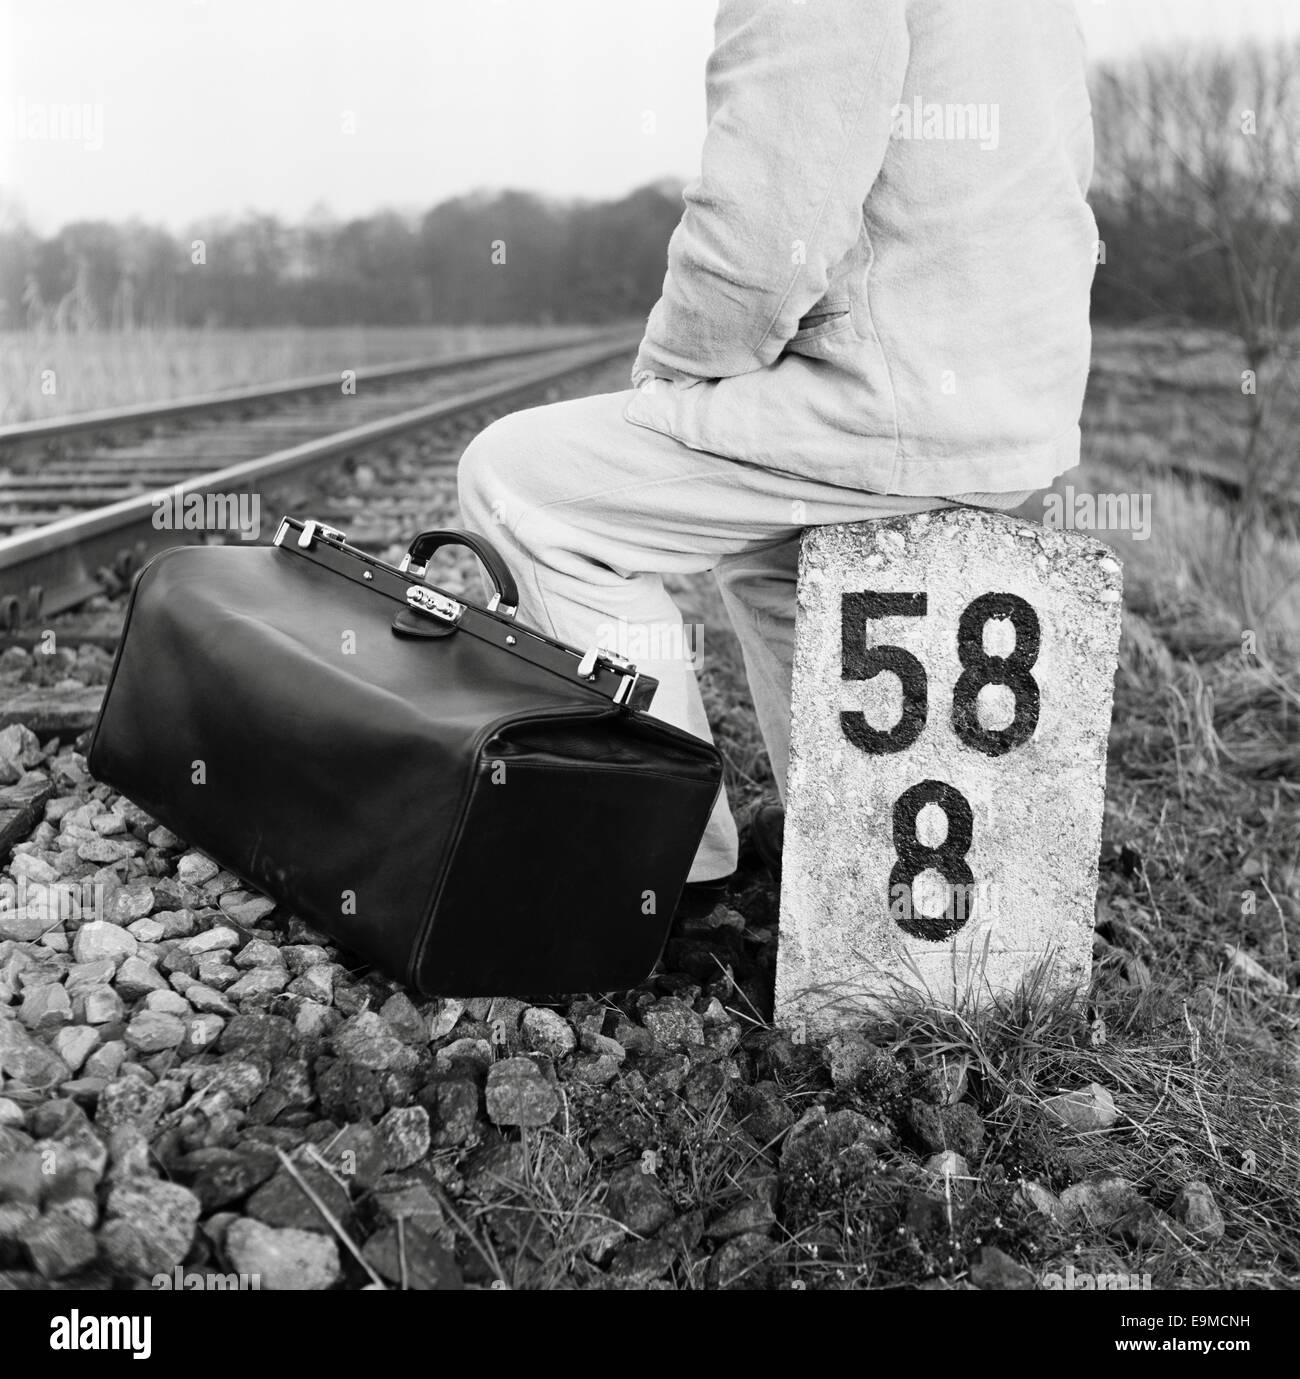 A person with a bag sitting next to train tracks - Stock Image